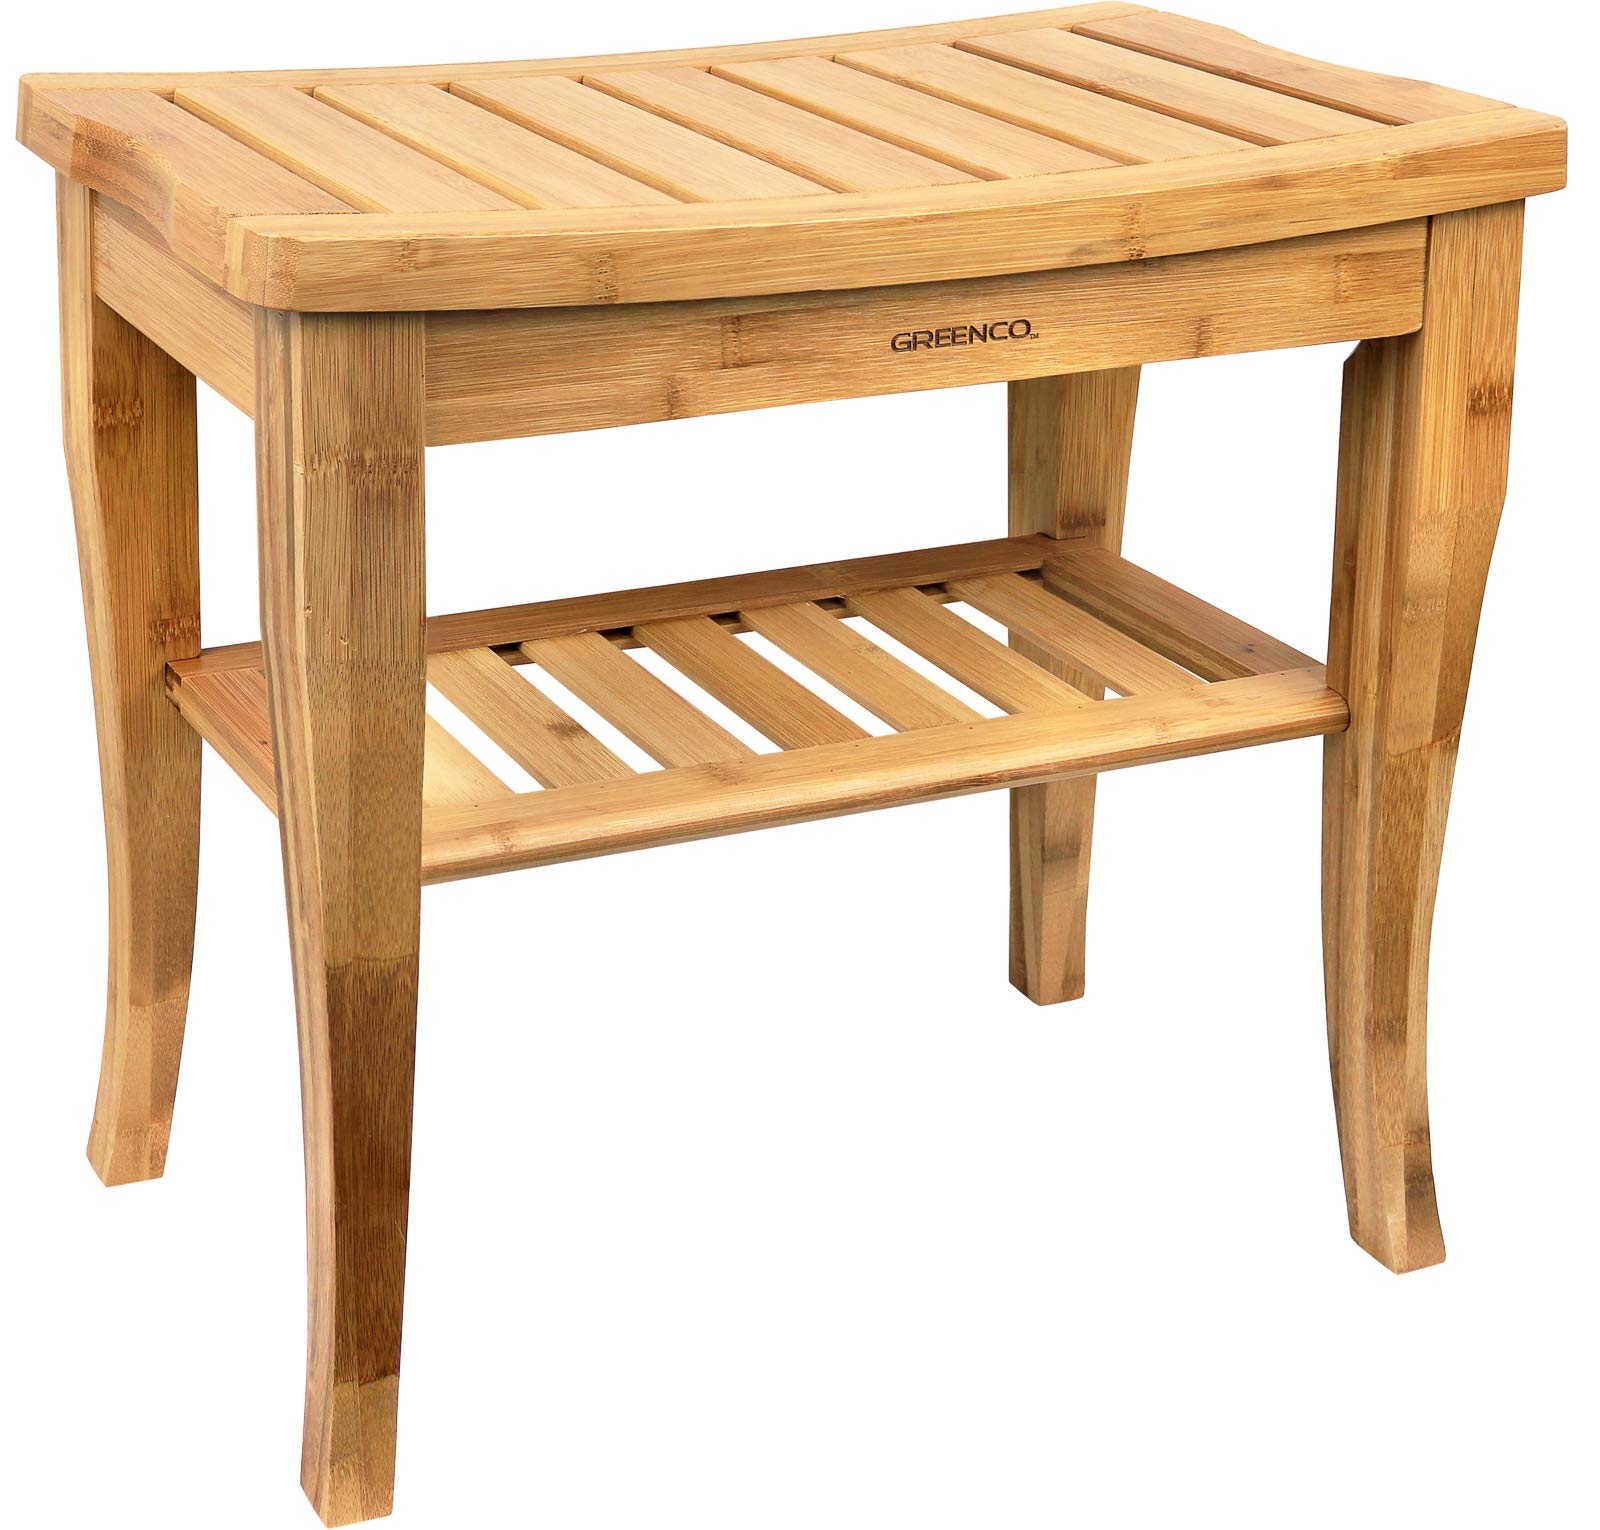 Greenco Waterproof Bamboo Shower Bench with Shelf, Wooden Spa Bath Stool, Indoor and Outdoor. by Greenco